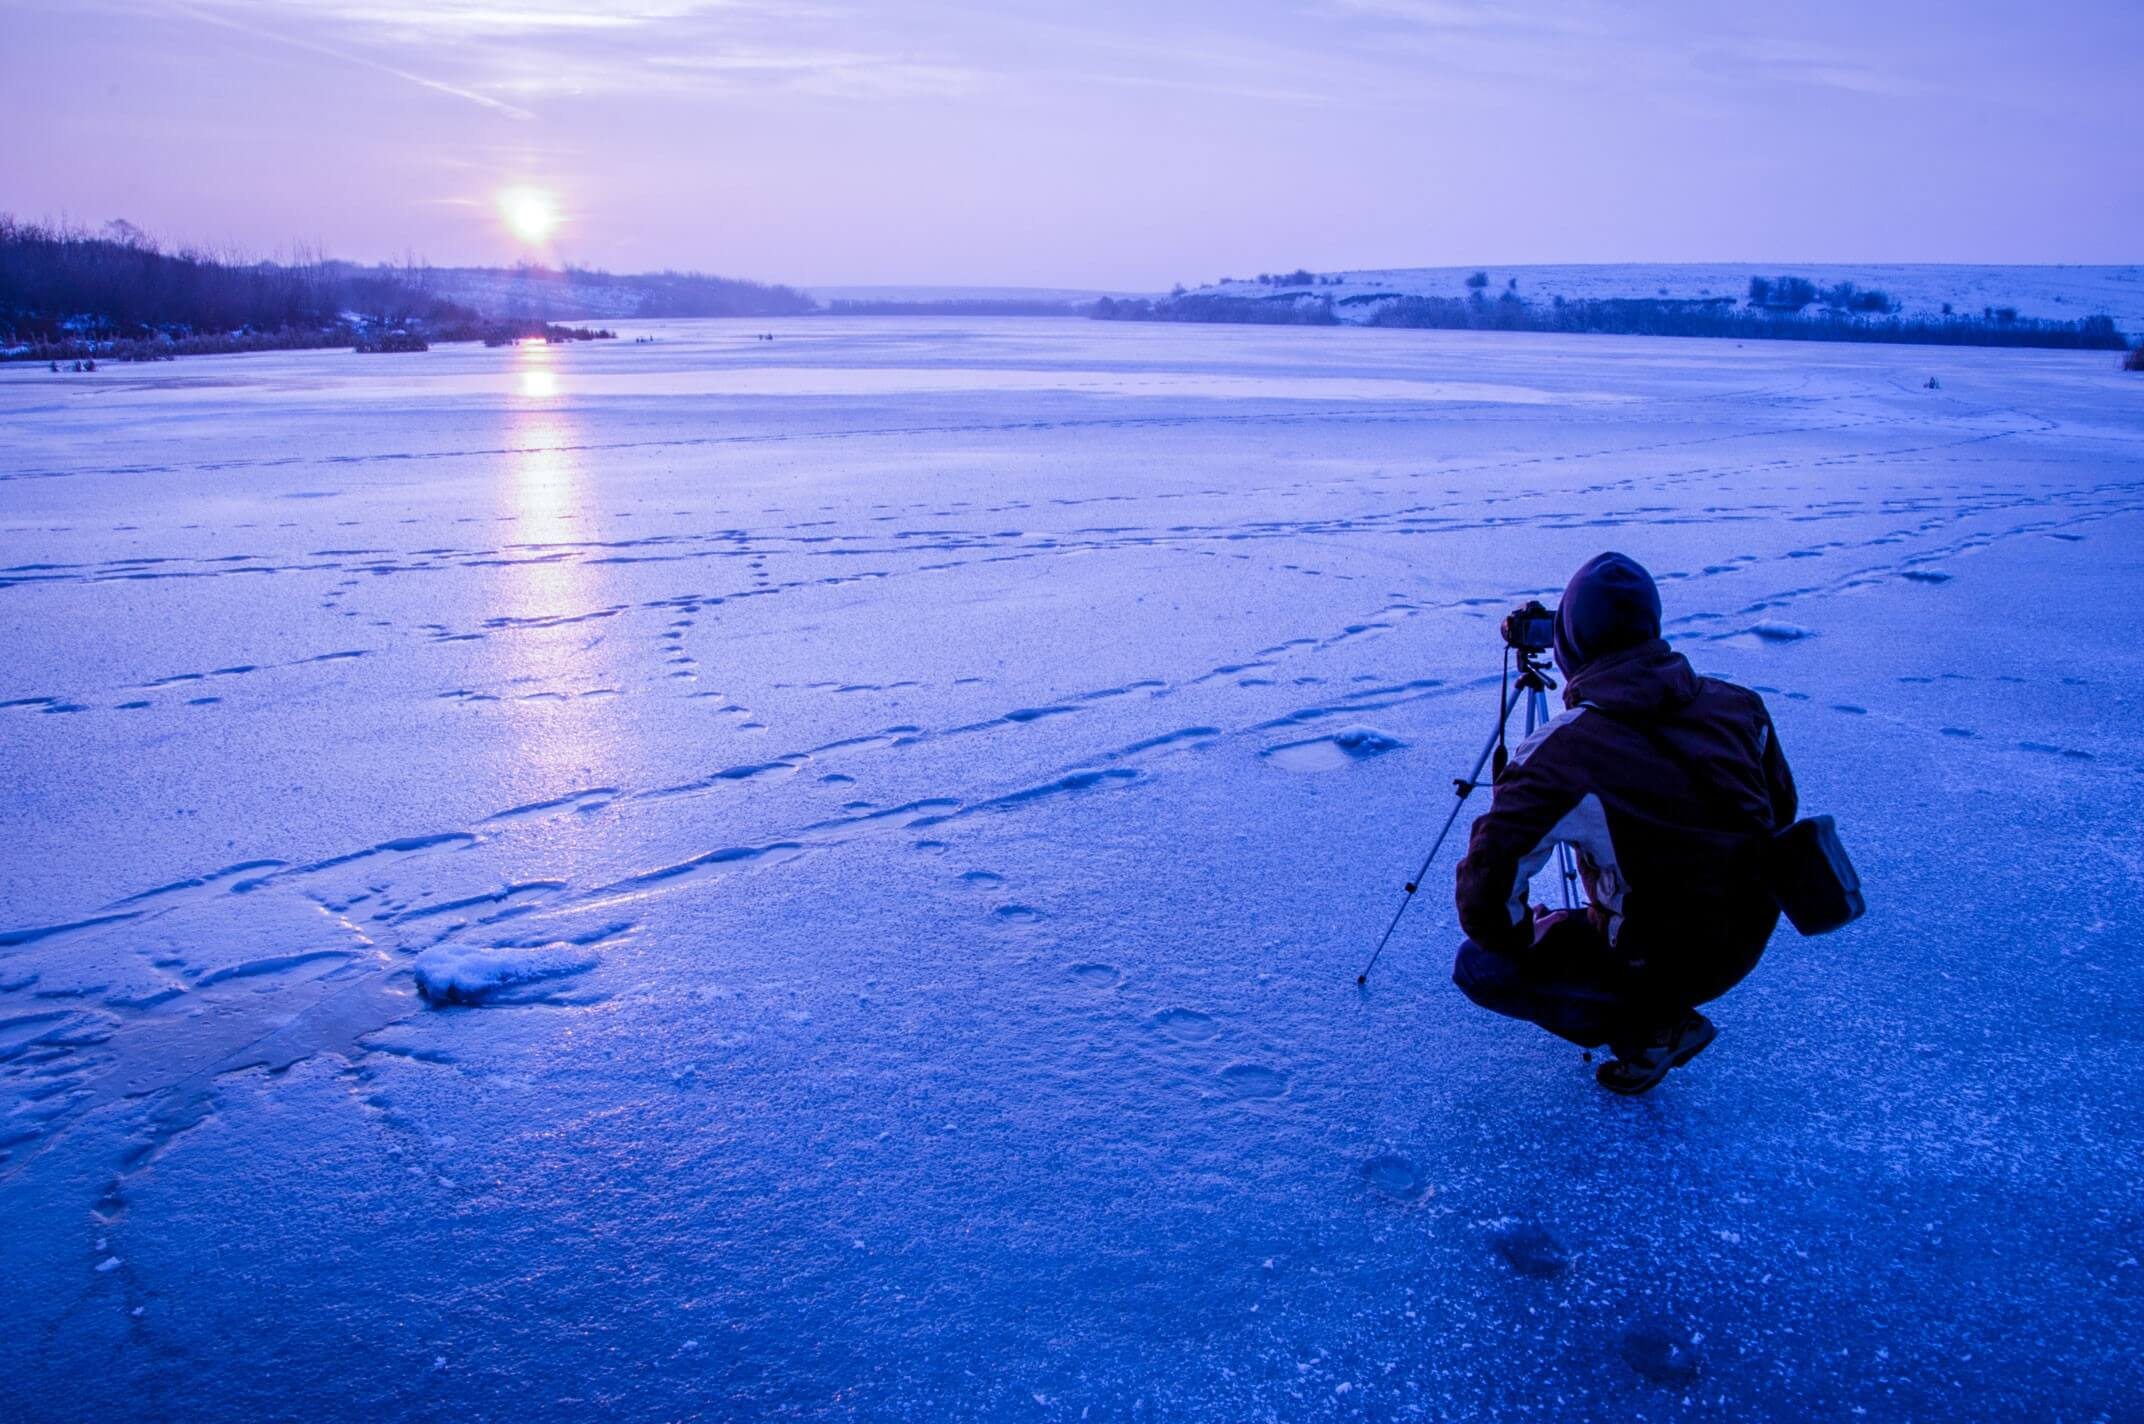 8 - How to Turn Your Outdoor Photography Passion into A Profession